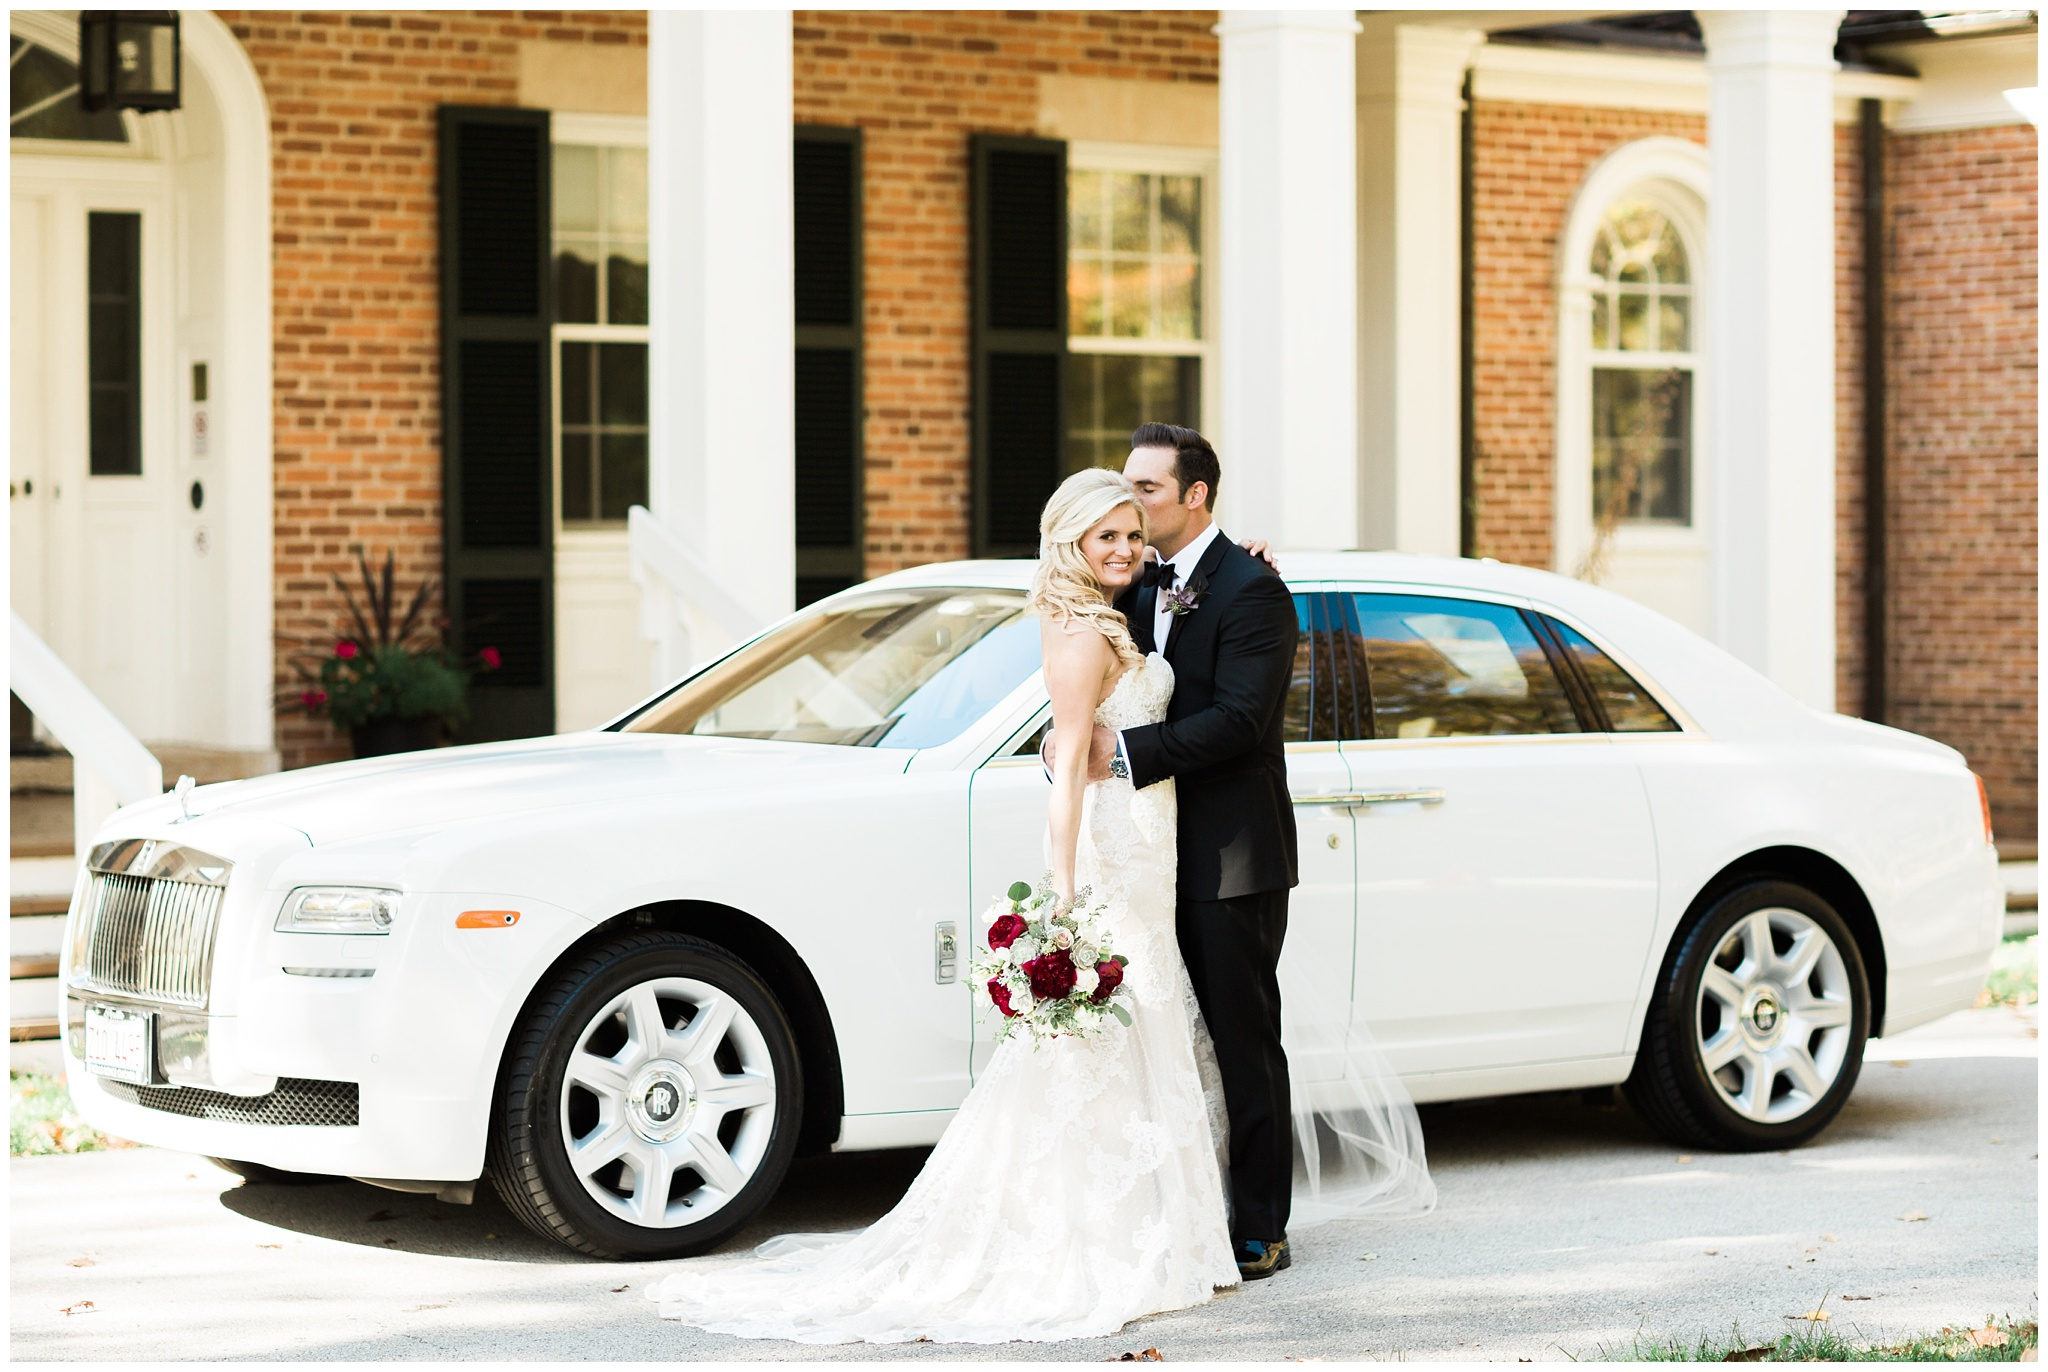 RebeccaHaleyPhotography_BarringtonPhotographer_ChicagoPhotographer_ChicagoWedding_0050.jpg